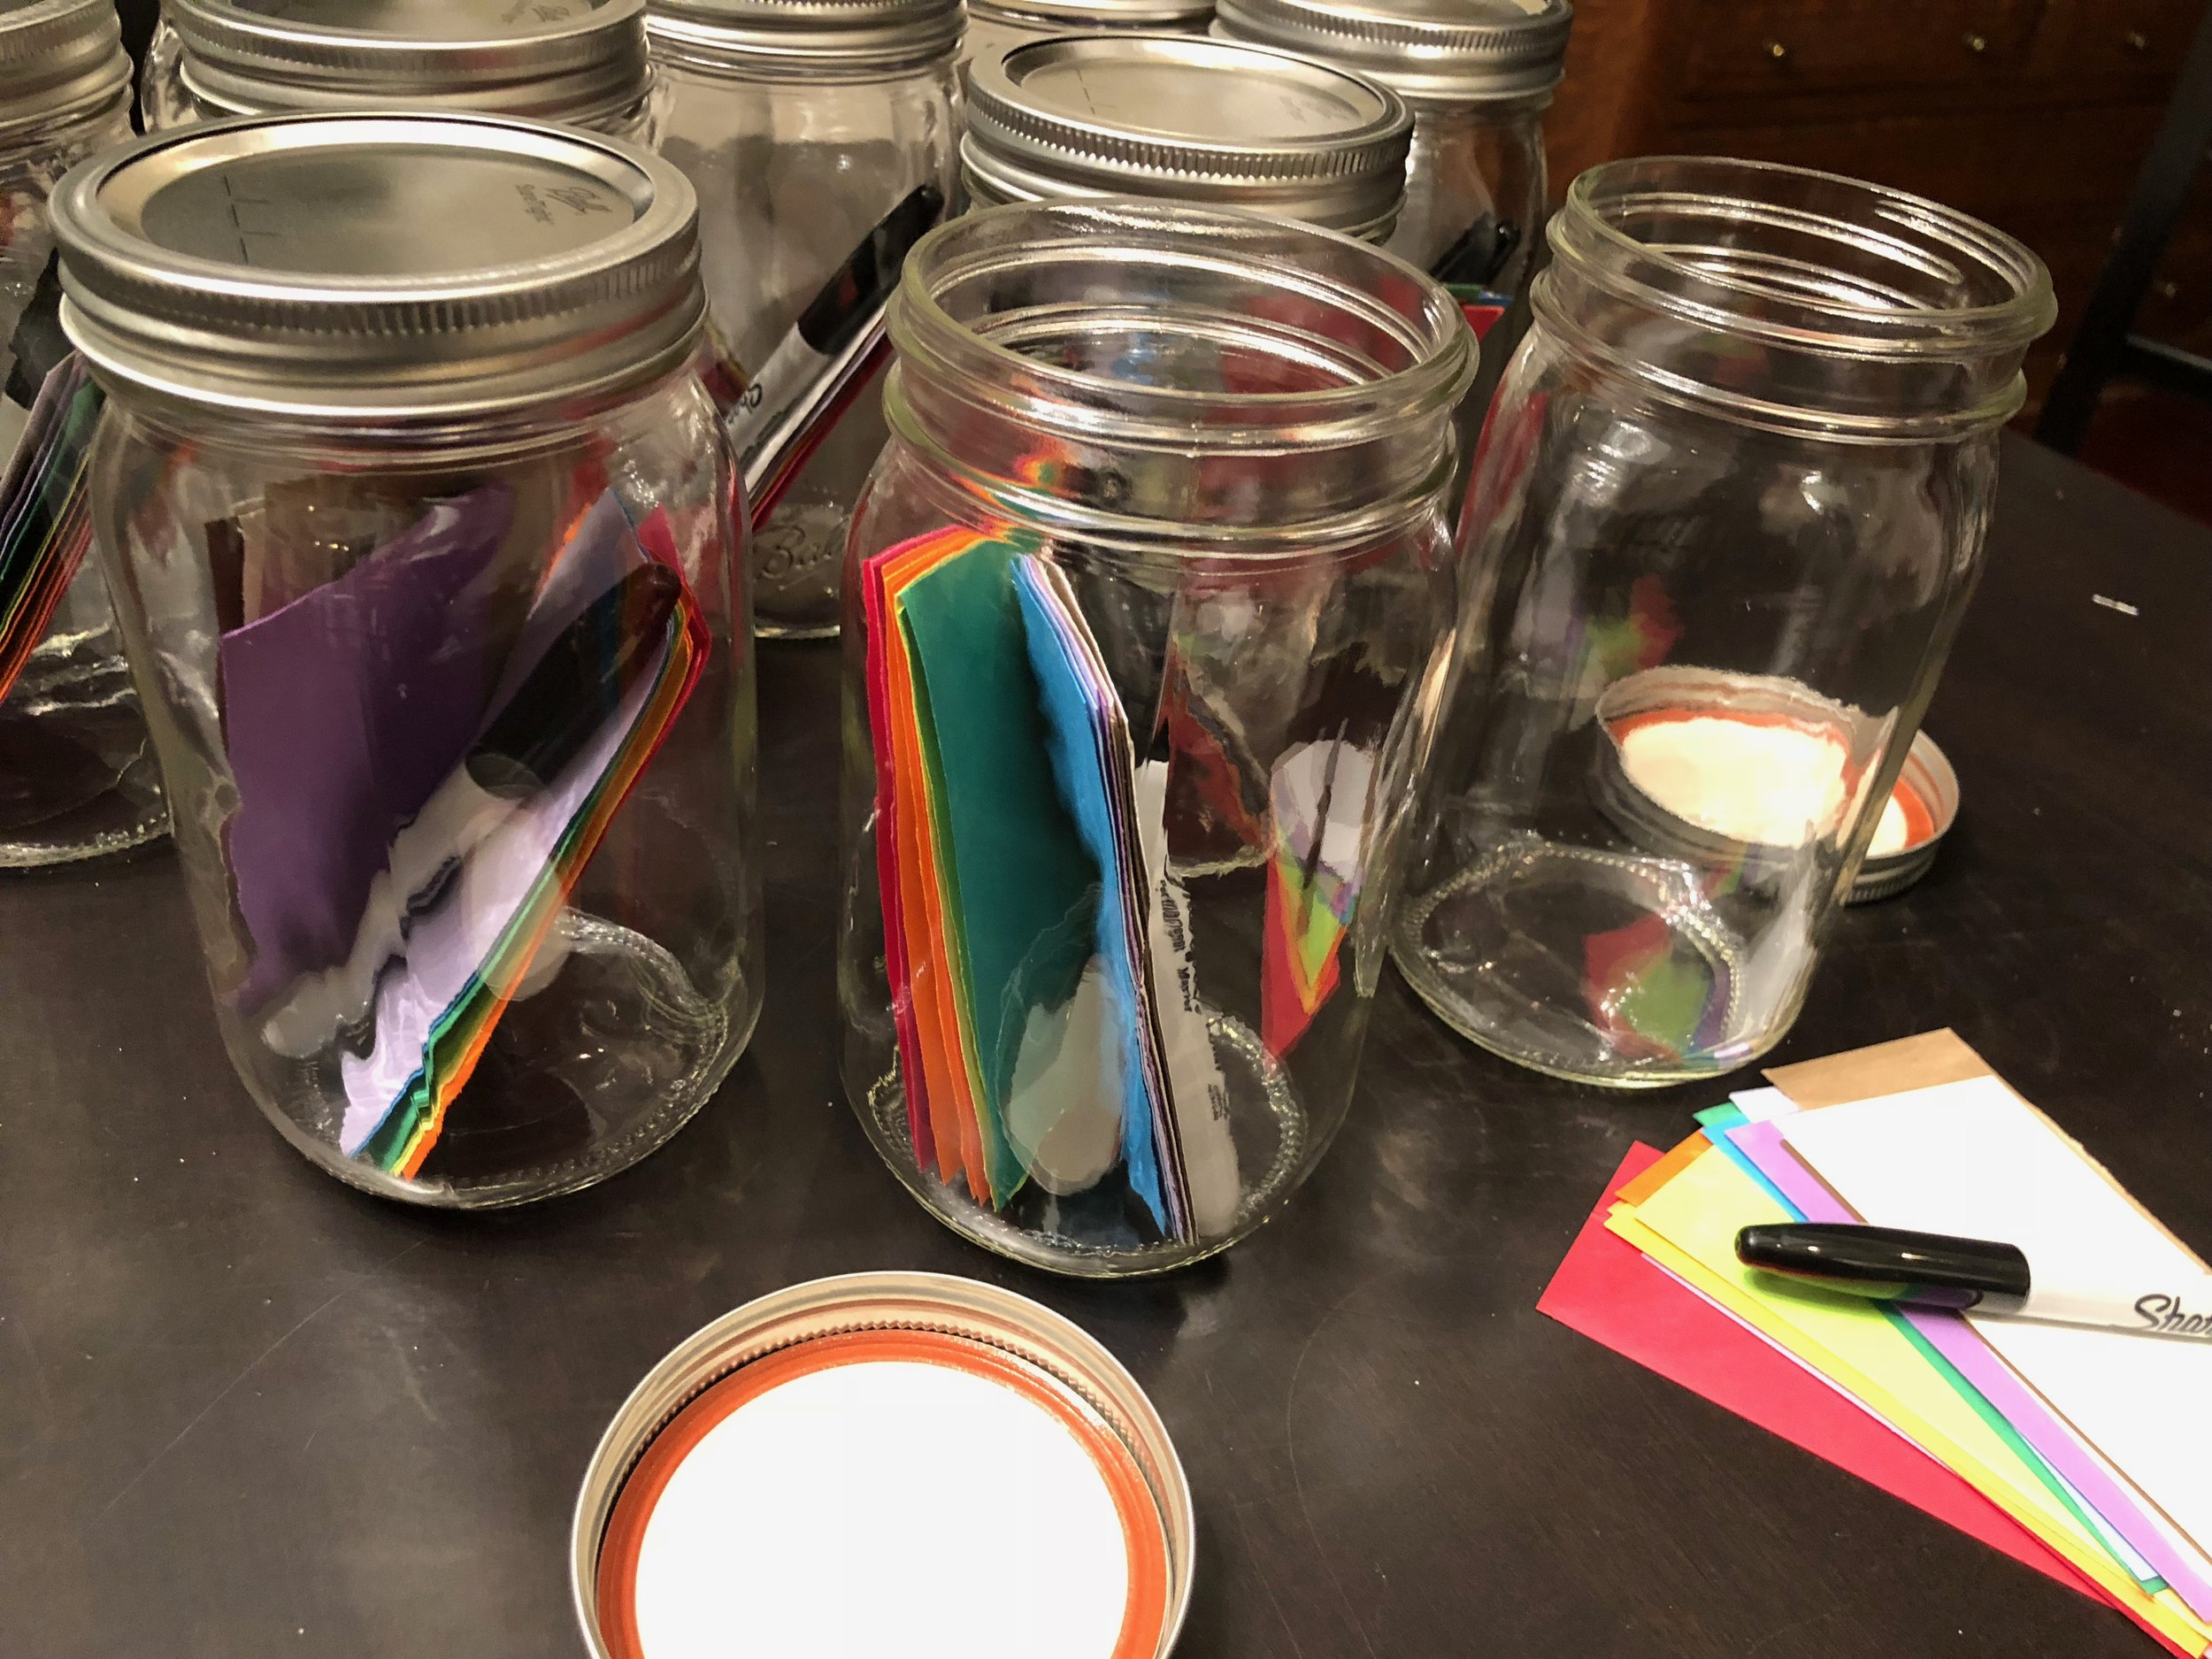 Each Gratitude Jar contains pieces of paper and a Sharpie.